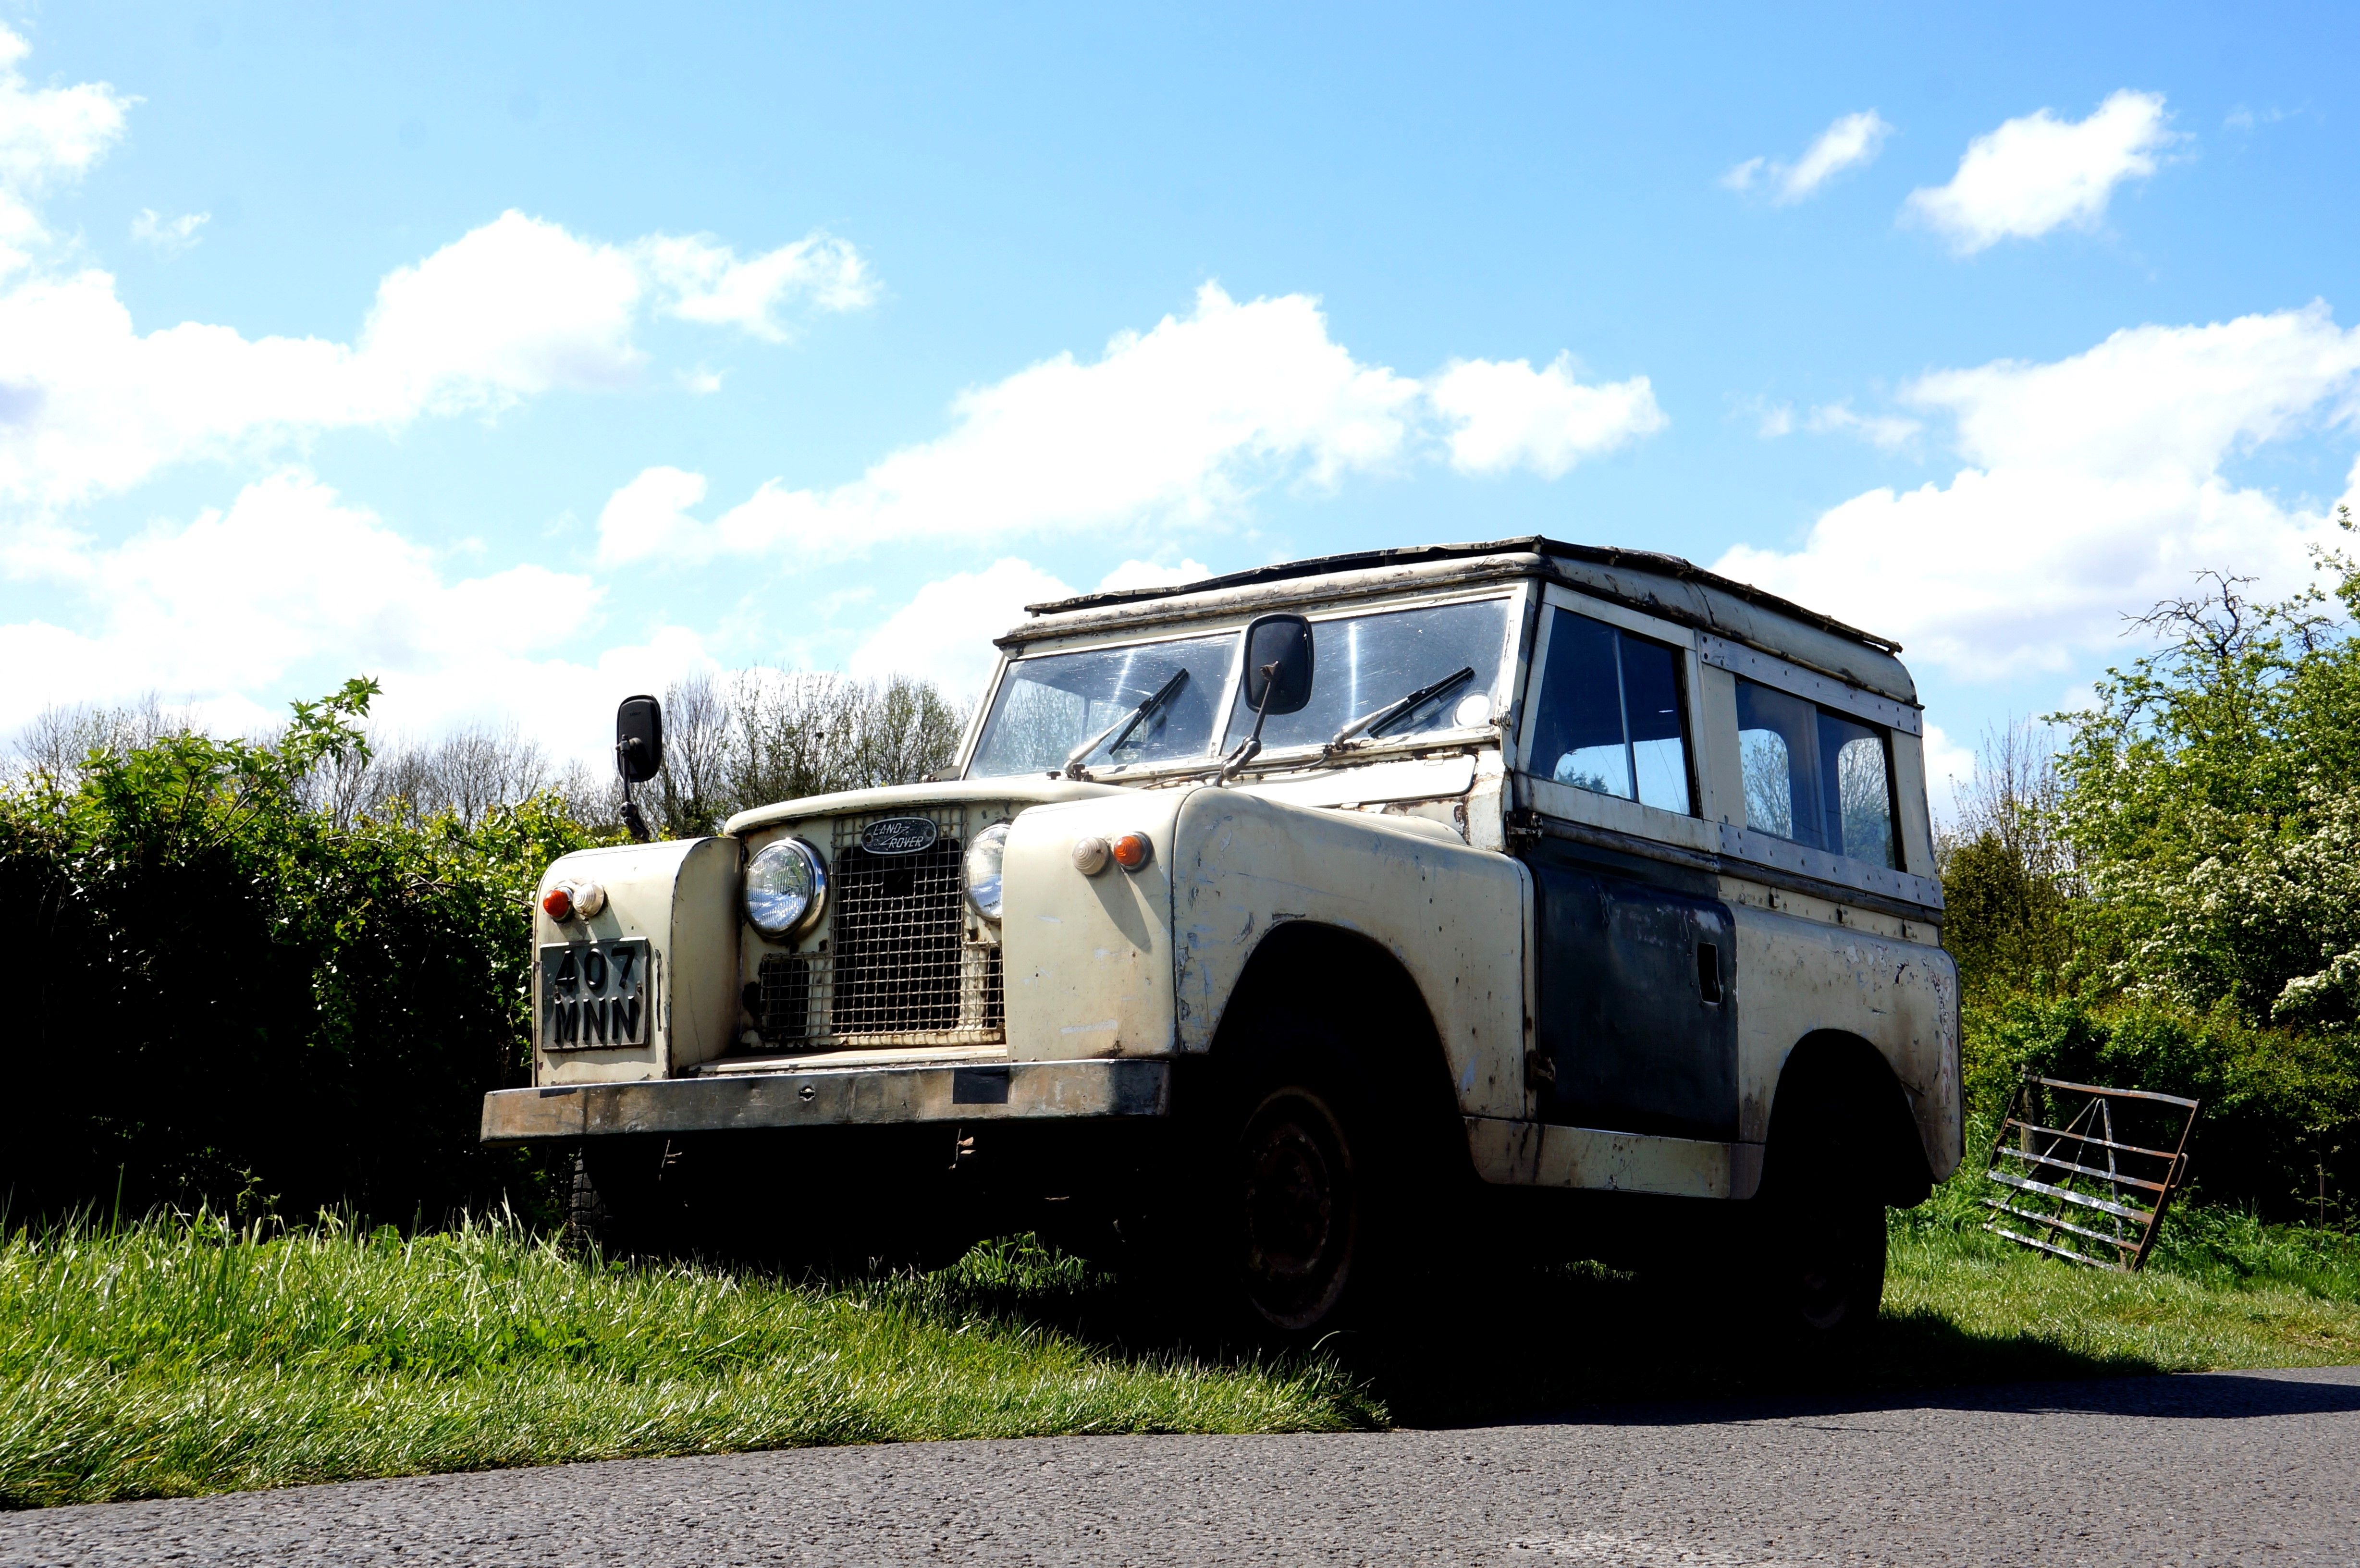 Nottinghamshire Land Rover Series II still in use!